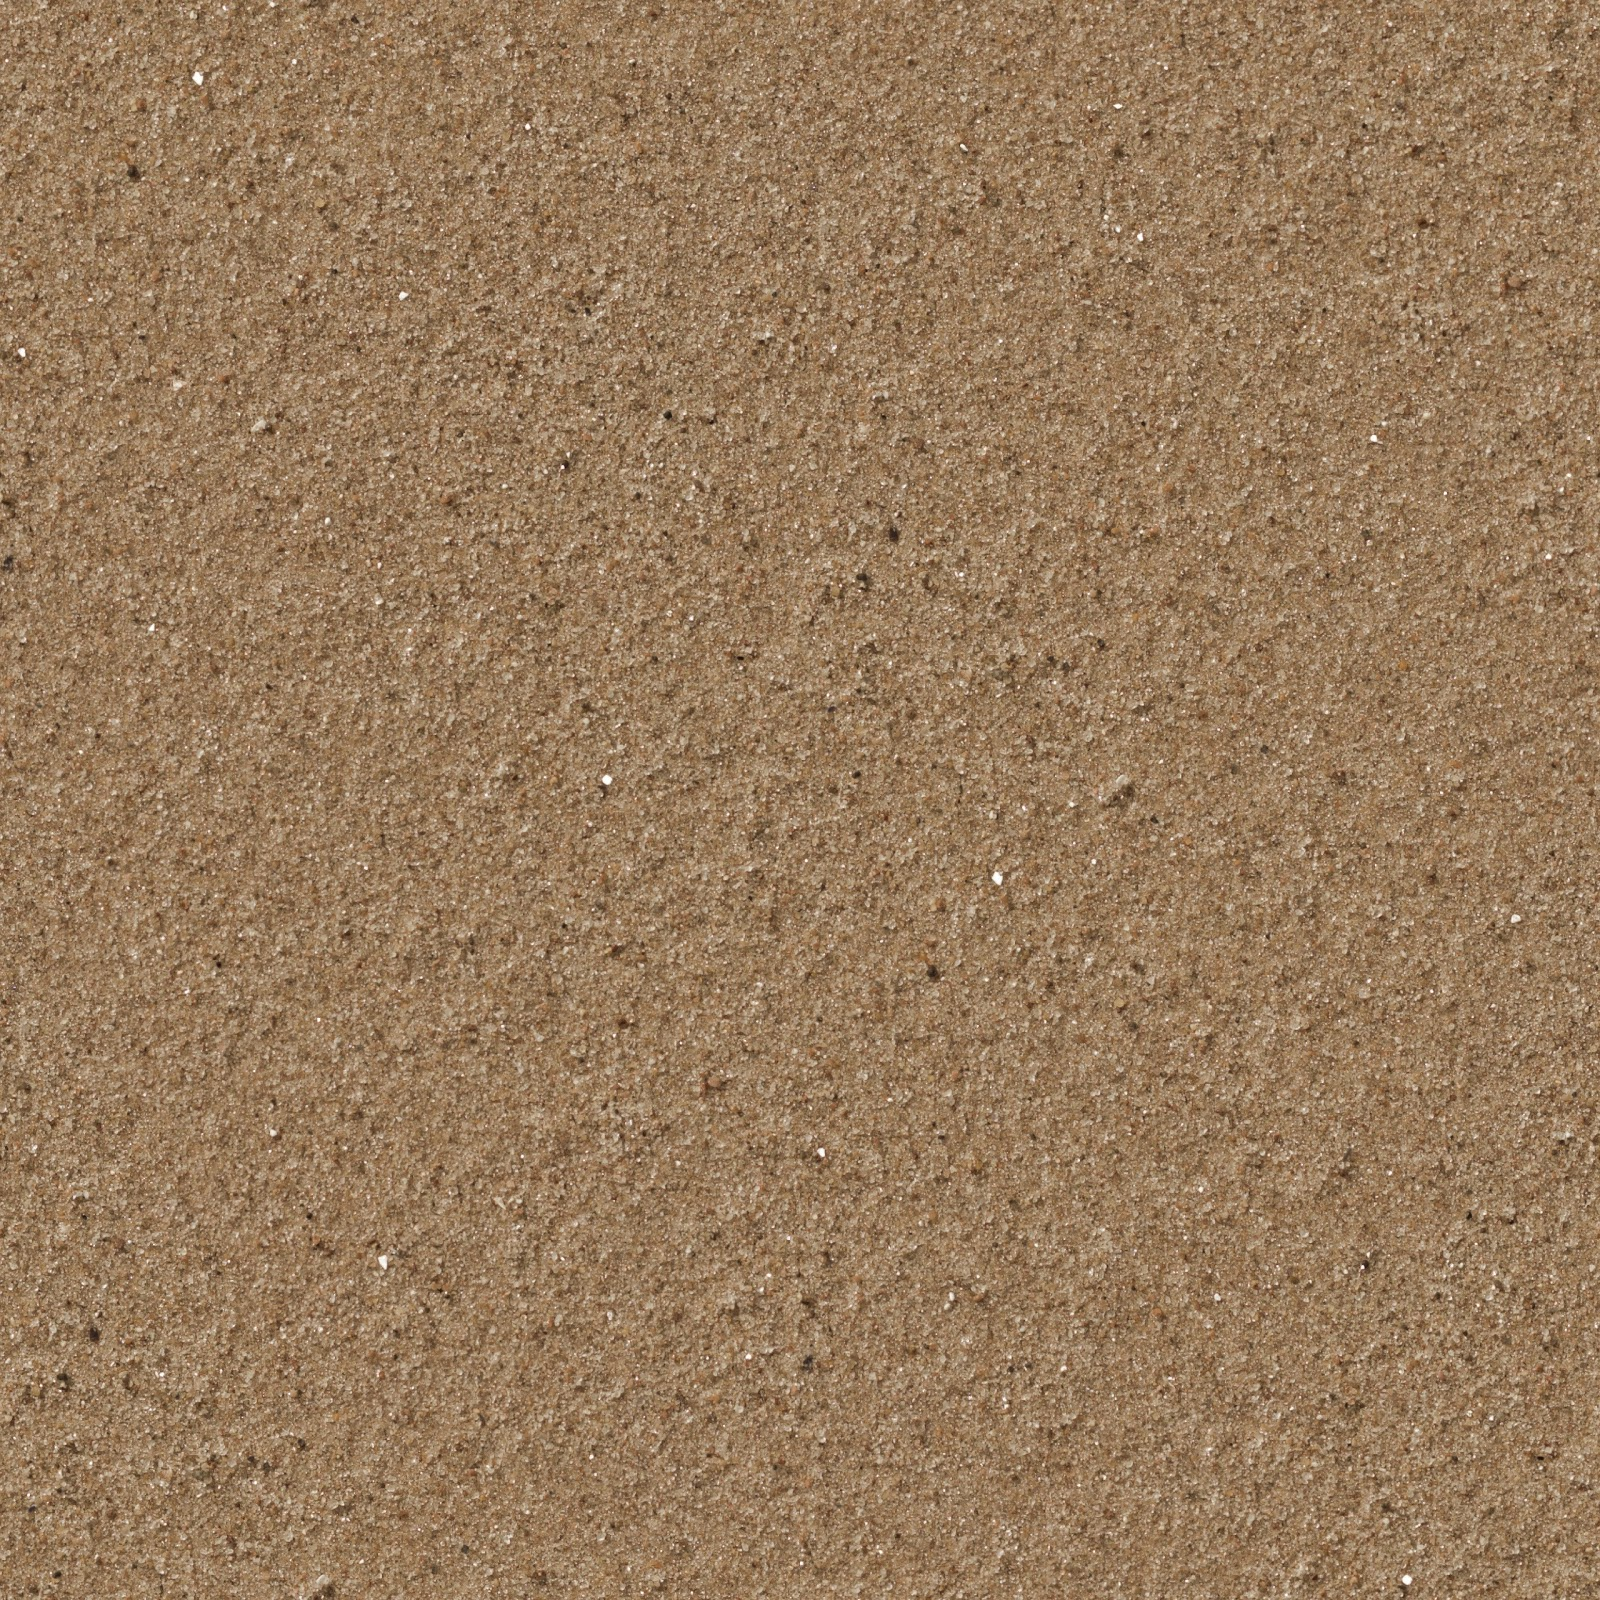 High resolution seamless textures june 2014 for Soil texture